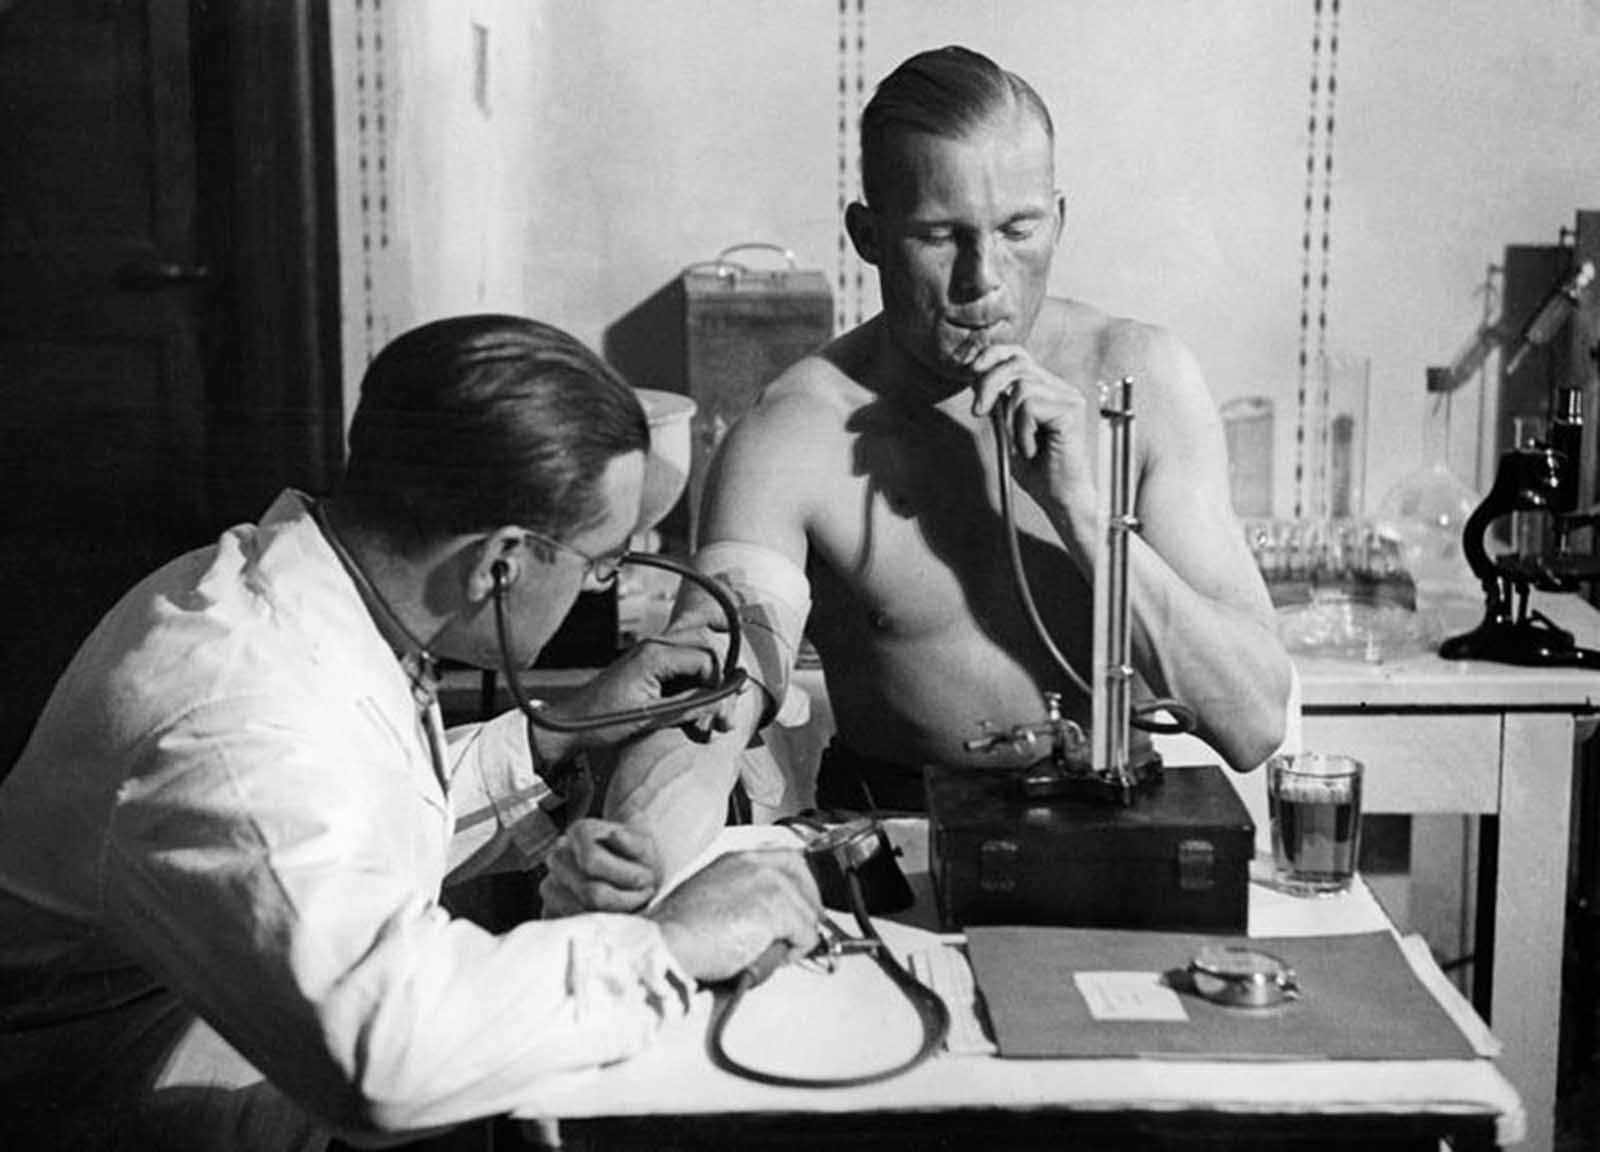 Lieutenant Radtke presses air into his lungs in a constant height with a mercury column, while the doctor checks his blood pressure, circa 1932.